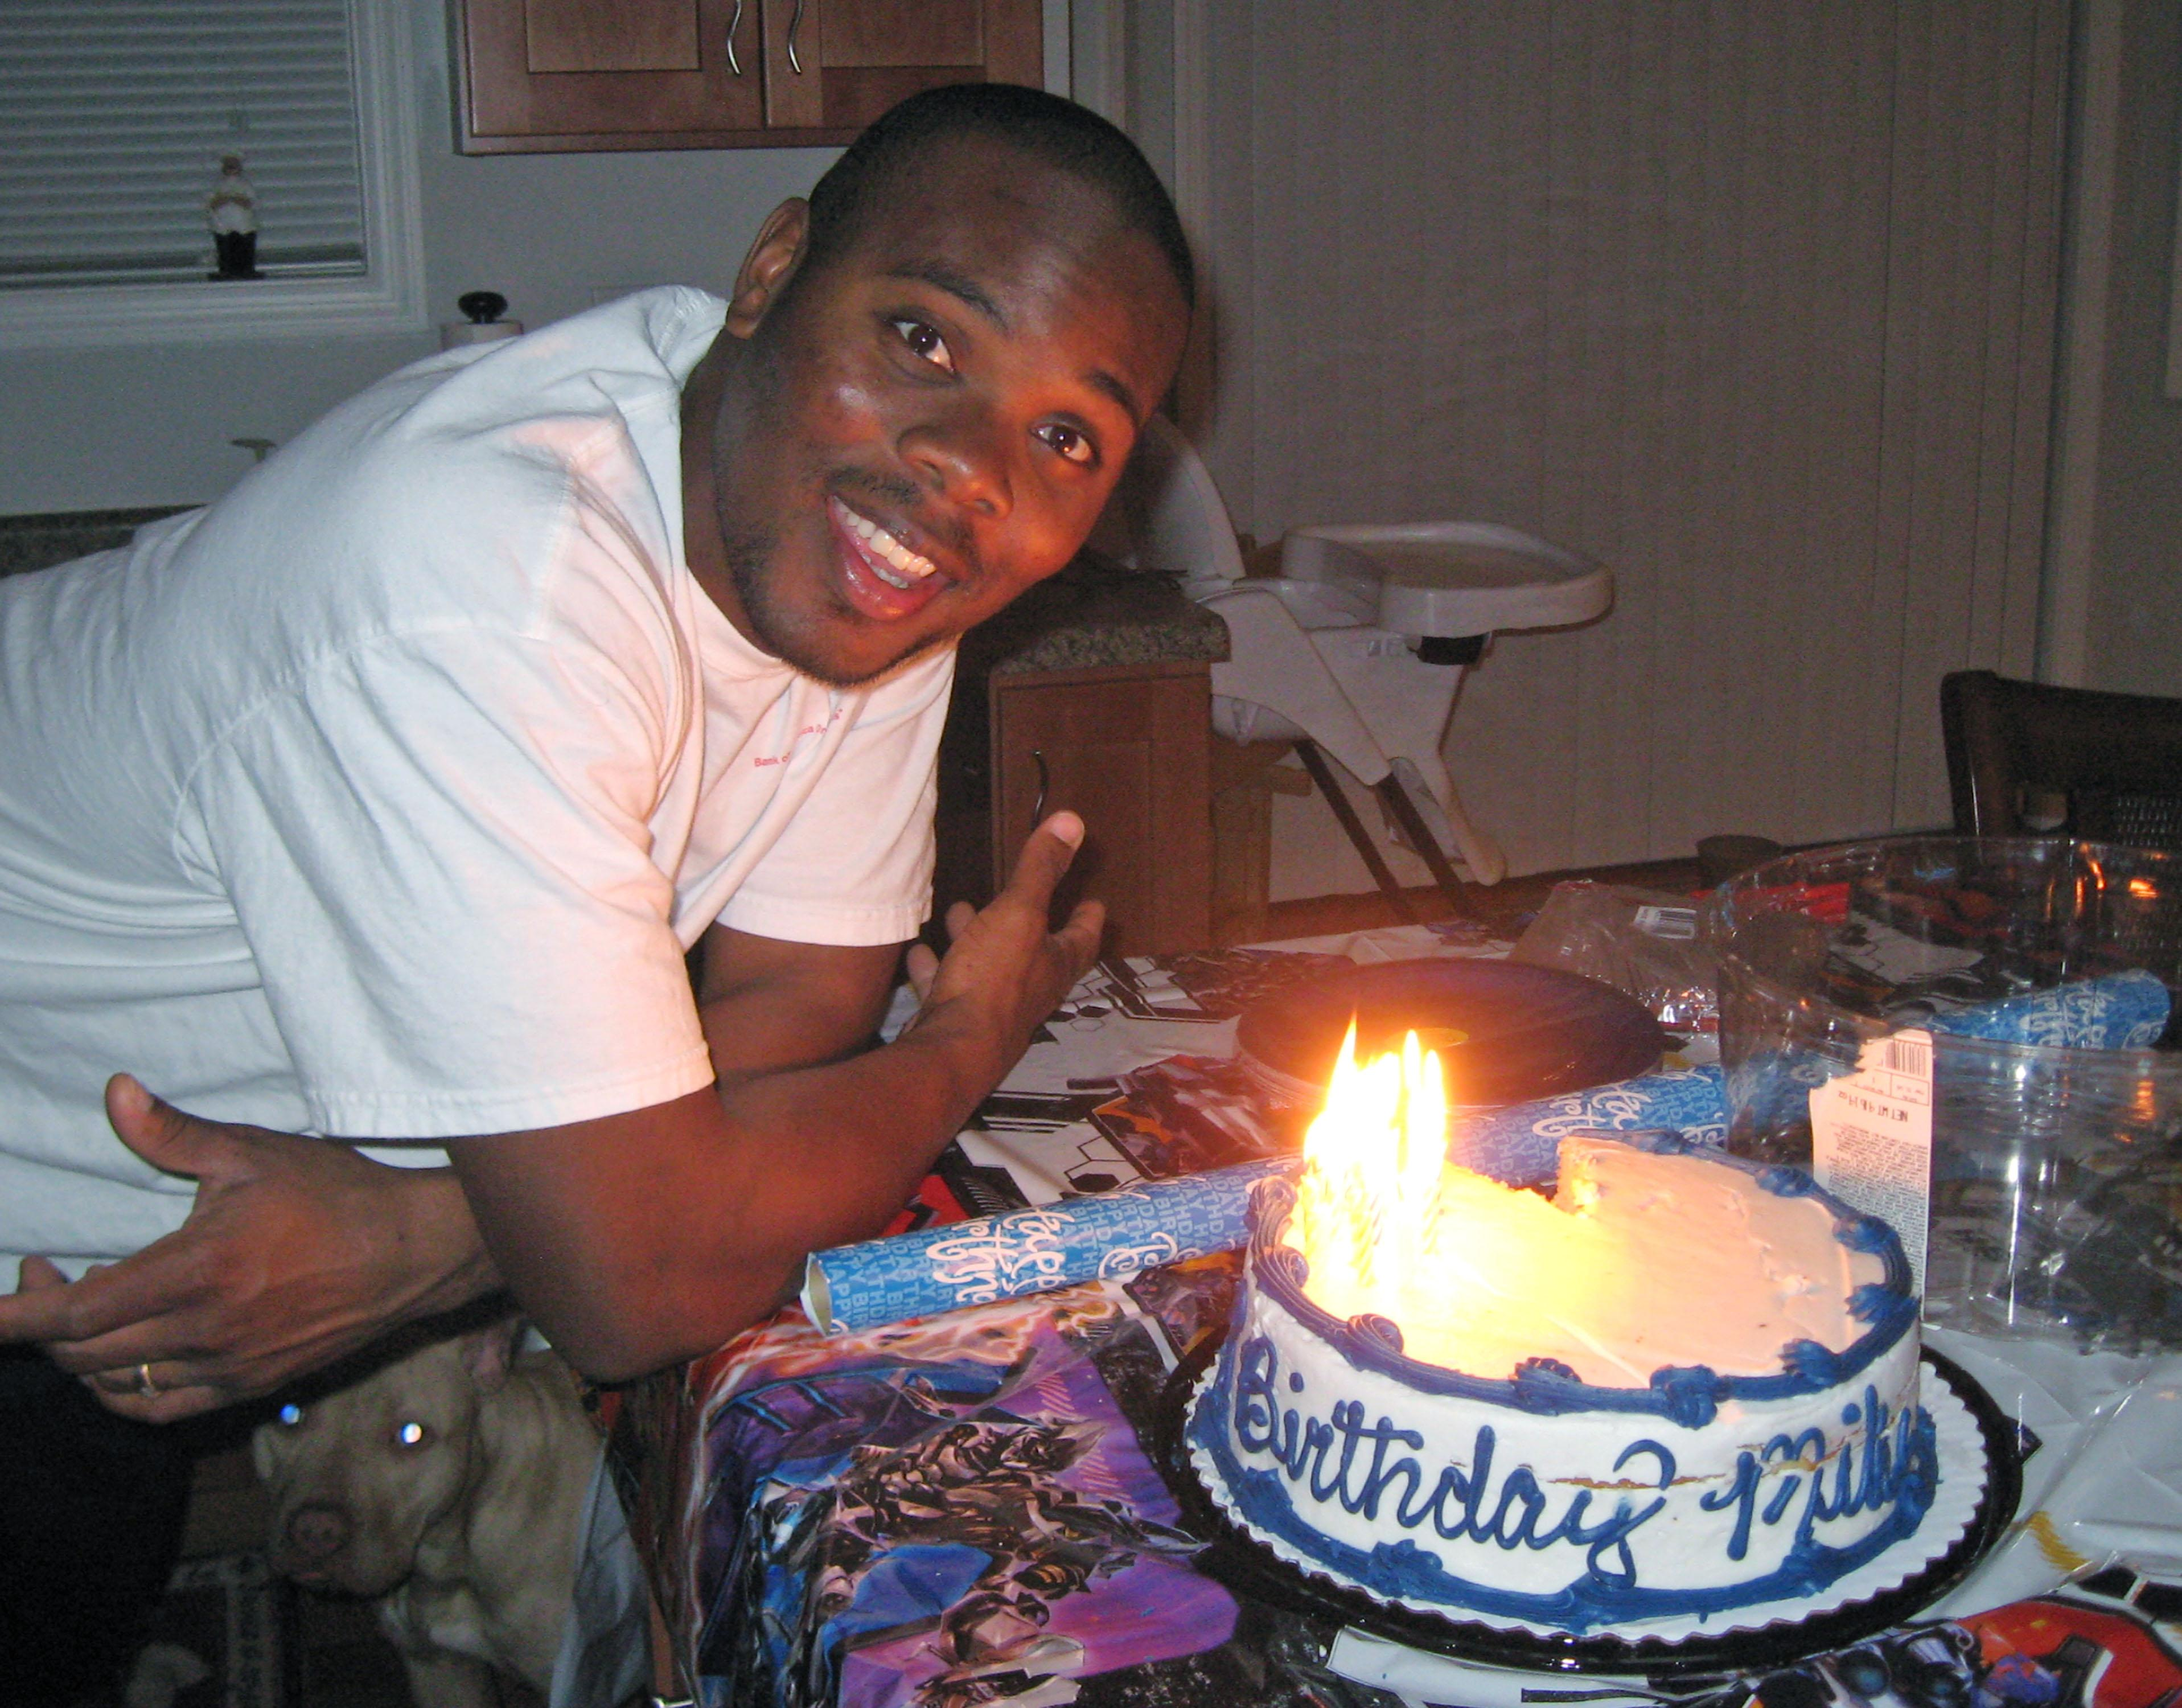 """In this photo provided by attorney Patrick Megaro is his client, Cornealious """"Mike"""" Anderson, with a birthday cake. Anderson, who avoided prison because of a clerical error and led a law-abiding life for 13 years, said he is overwhelmed by the support he's received since the story of his incarceration became public. Meanwhile, the Missouri attorney general signaled that he would look for a way to take Anderson's many years of clean living into account in attempting to resolve the """"difficult situation."""" (AP Photo/Courtesy Patrick Megaro)"""